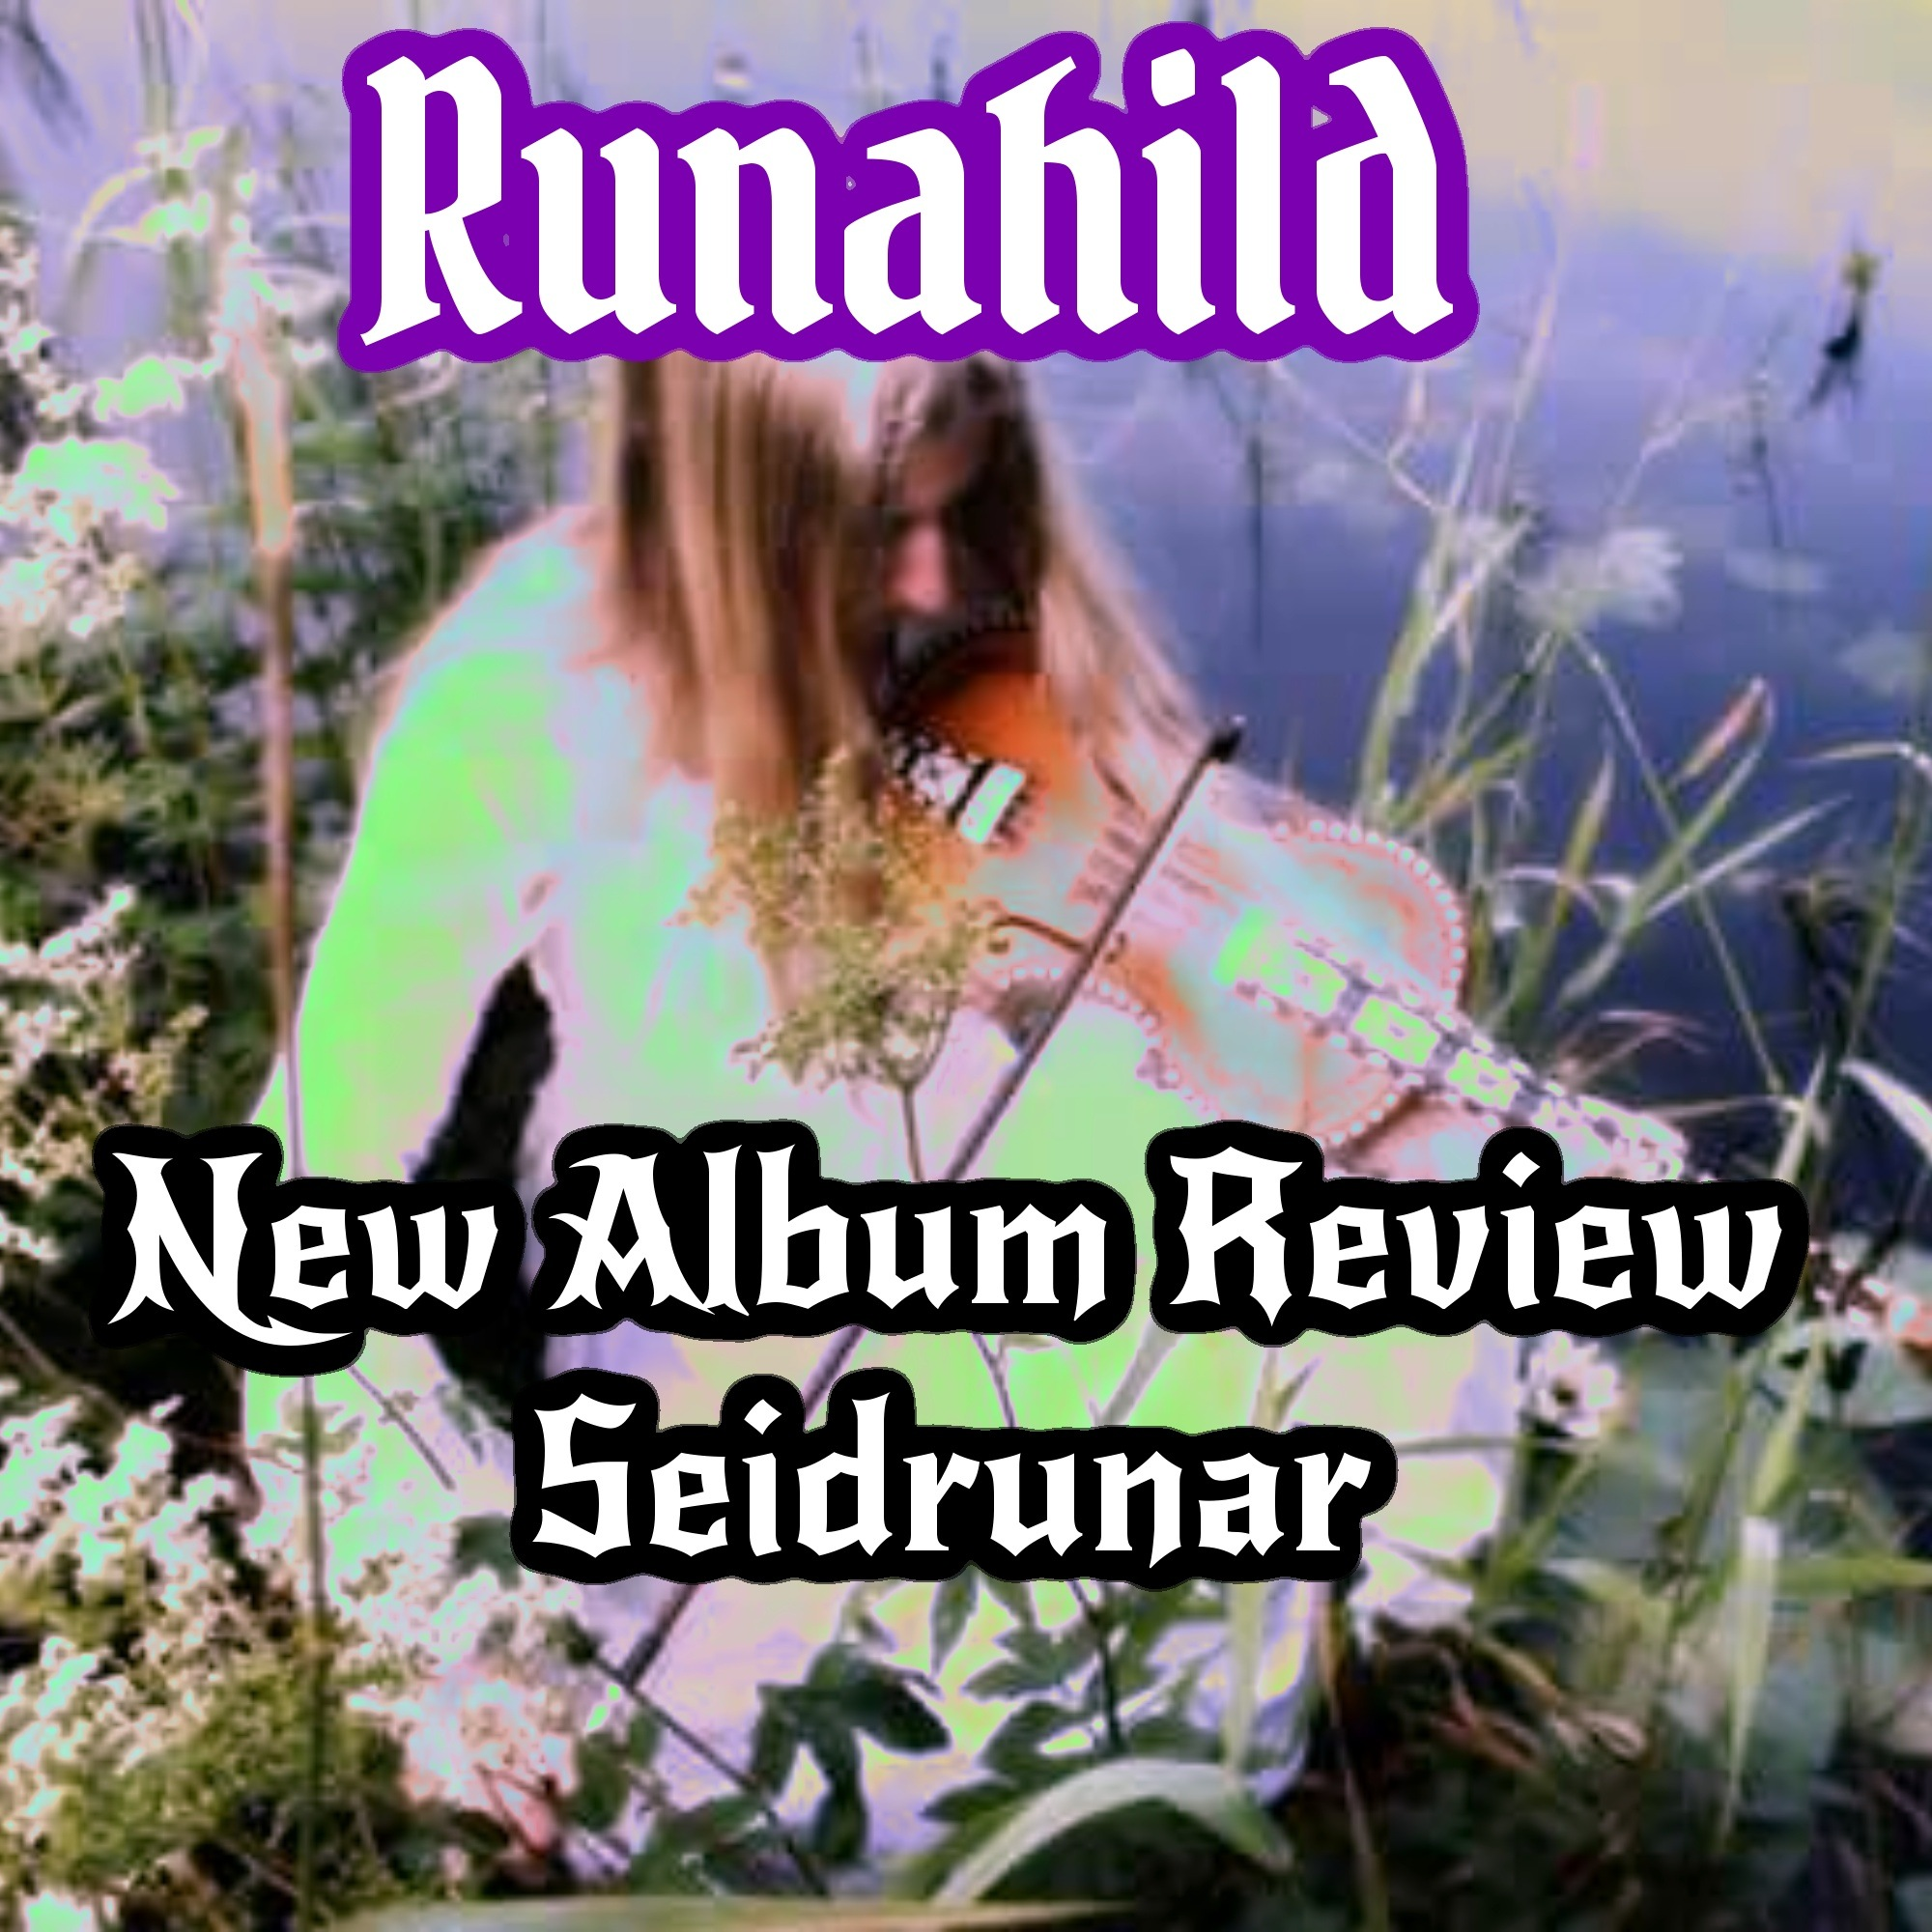 Album Review for Runahilds new album  by Tim Raven Rotar